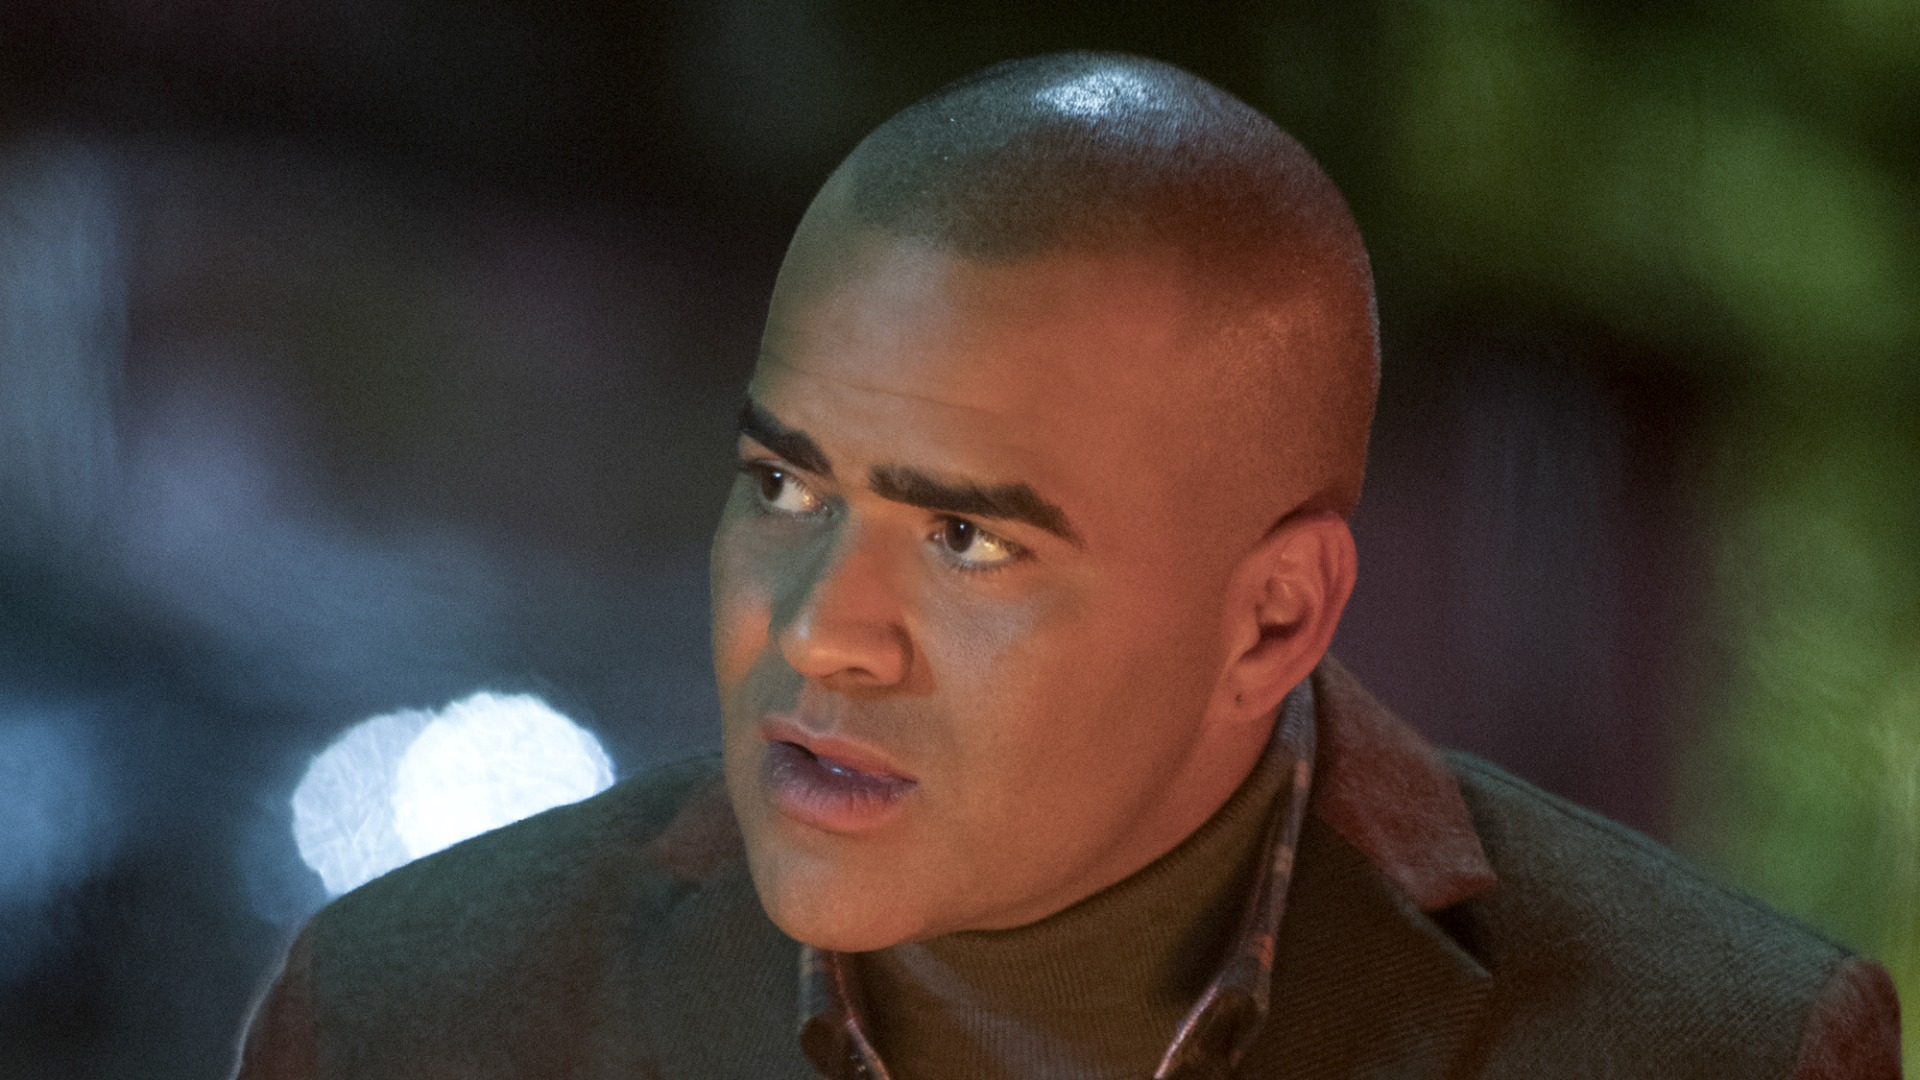 Christopher Jackson from Bull